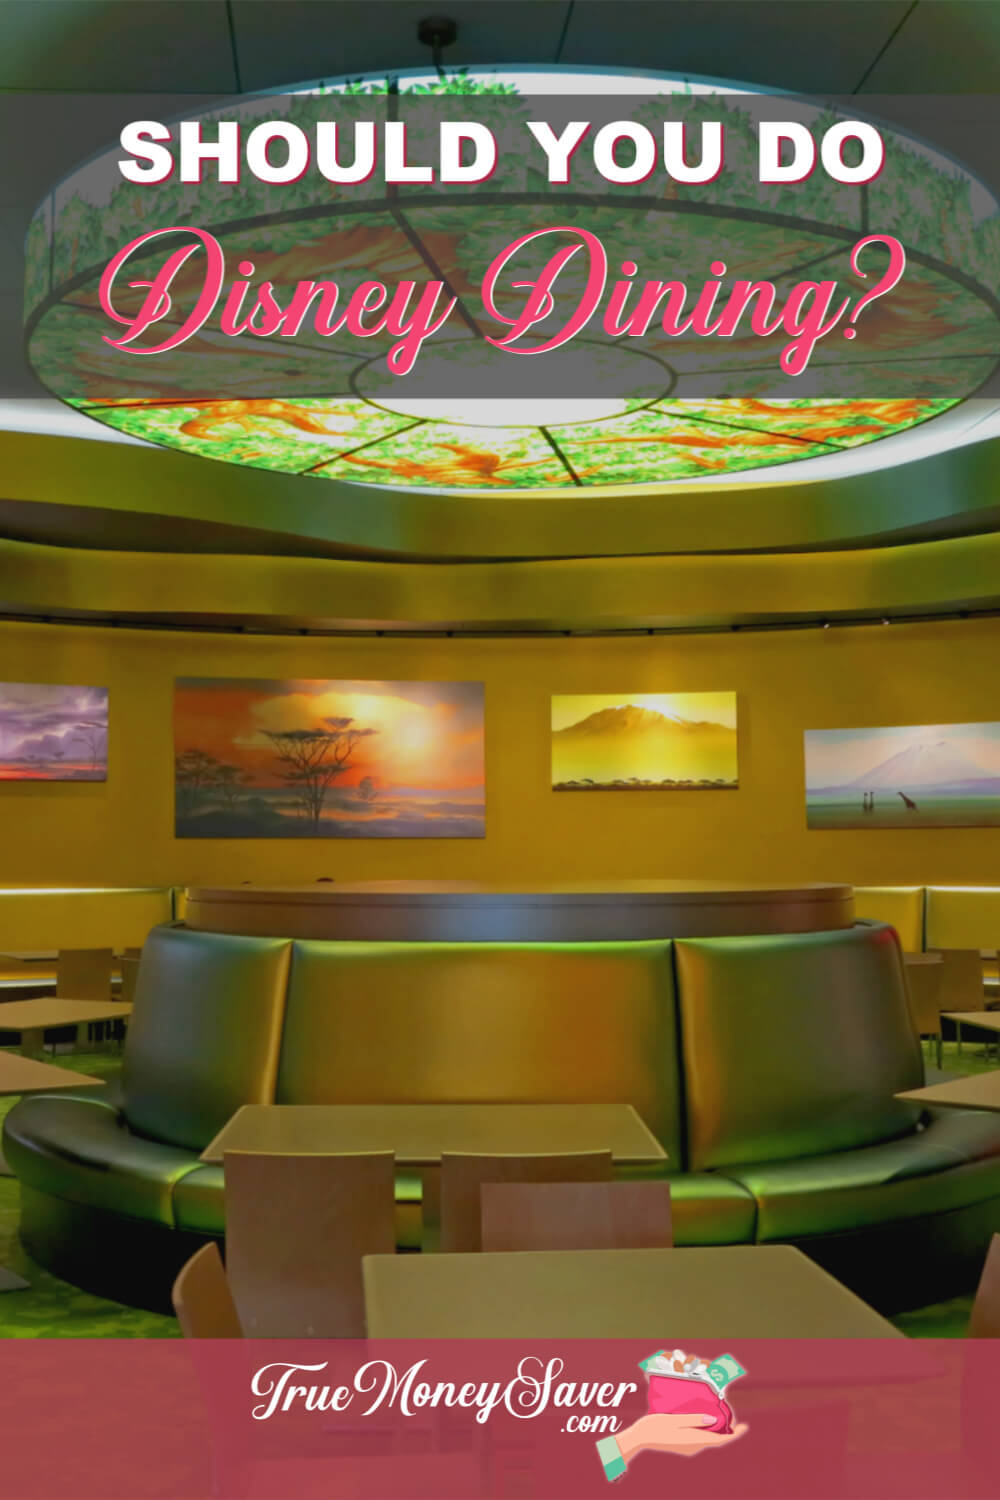 The Disney World Dining Plan can be confusing with all the options available. This post helps you organize your options to make the best choice for your family. #savingmoney #disneyworld #disneyfun #truemoneysaver